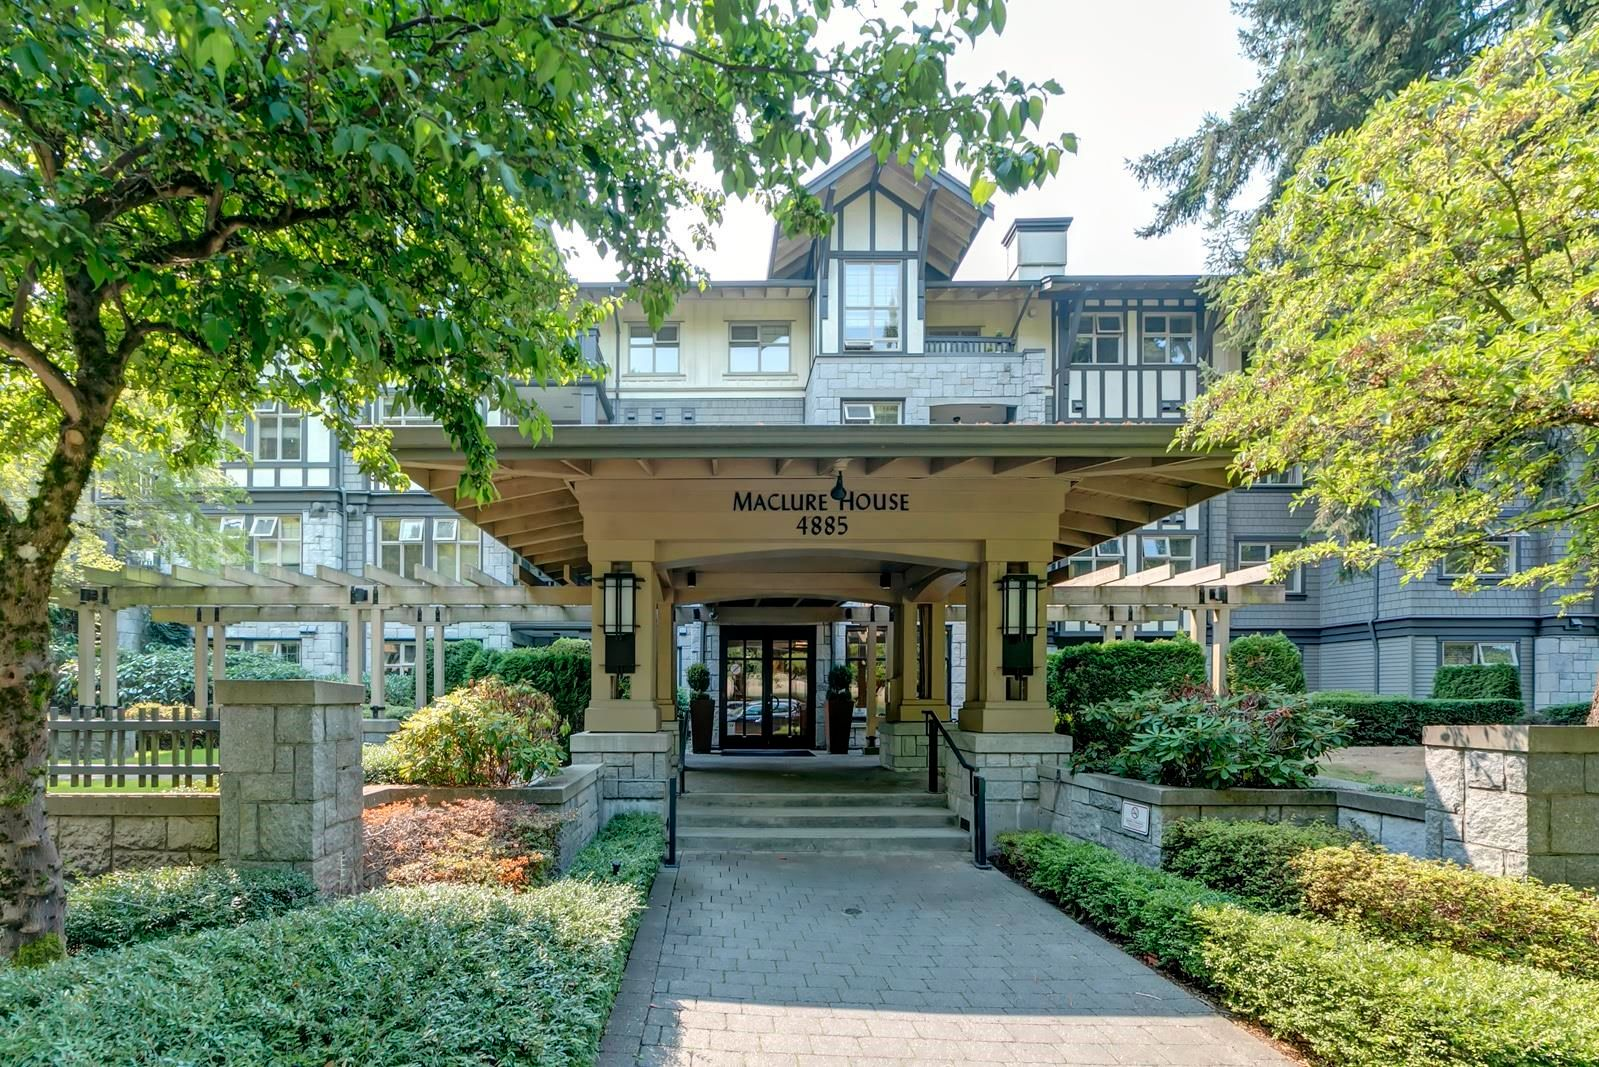 """Main Photo: 211 4885 VALLEY Drive in Vancouver: Quilchena Condo for sale in """"MACLURE HOUSE"""" (Vancouver West)  : MLS®# R2618425"""